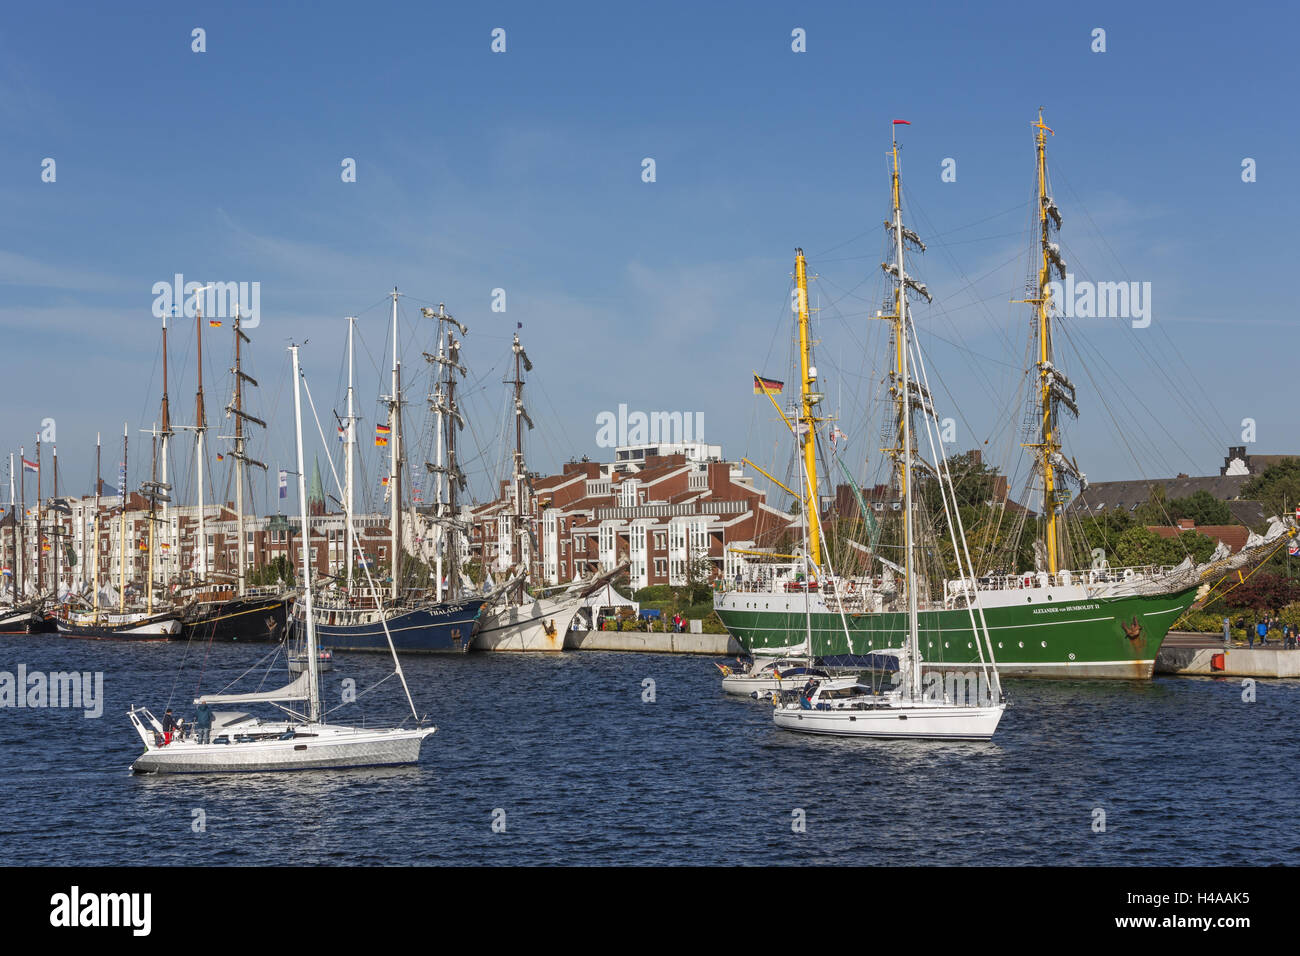 Great yachtsmen 'Alexander von Humboldt II' and 'Thalassa' lie with the quay Bonte to the JadeWeserPort - Stock Image